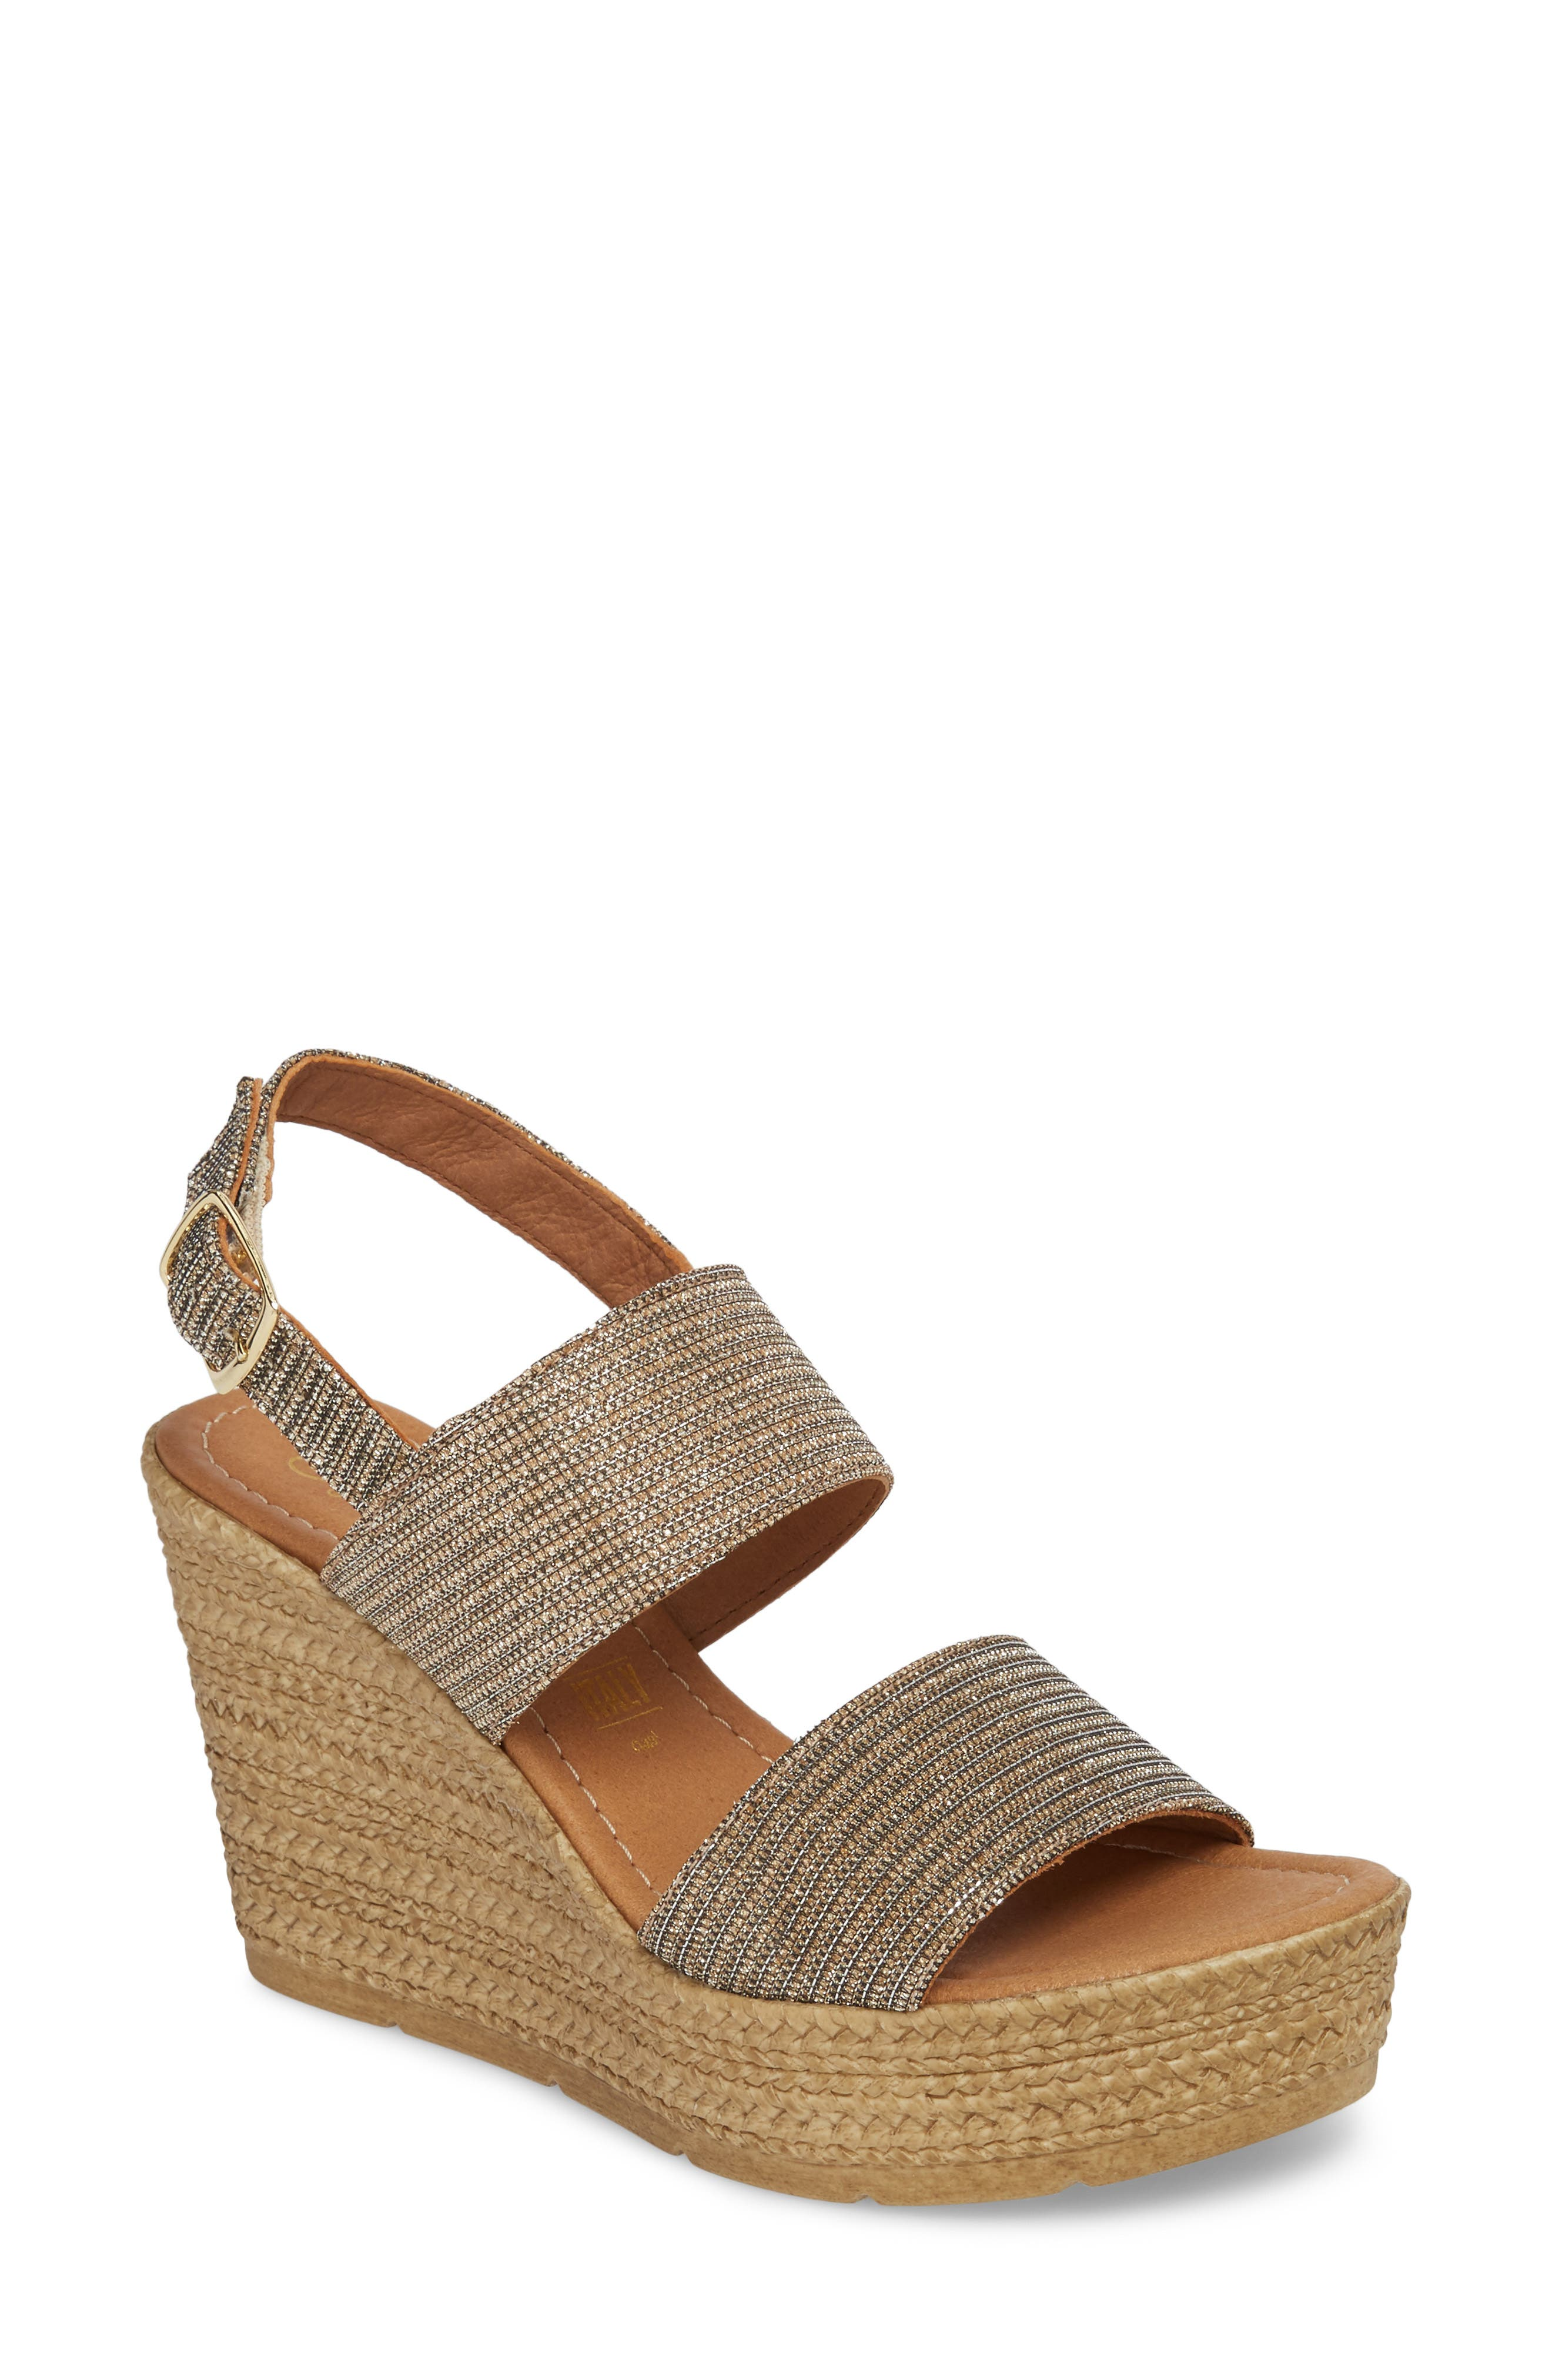 Downtime Wedge Sandal,                             Main thumbnail 1, color,                             Bronze Metallic Fabric